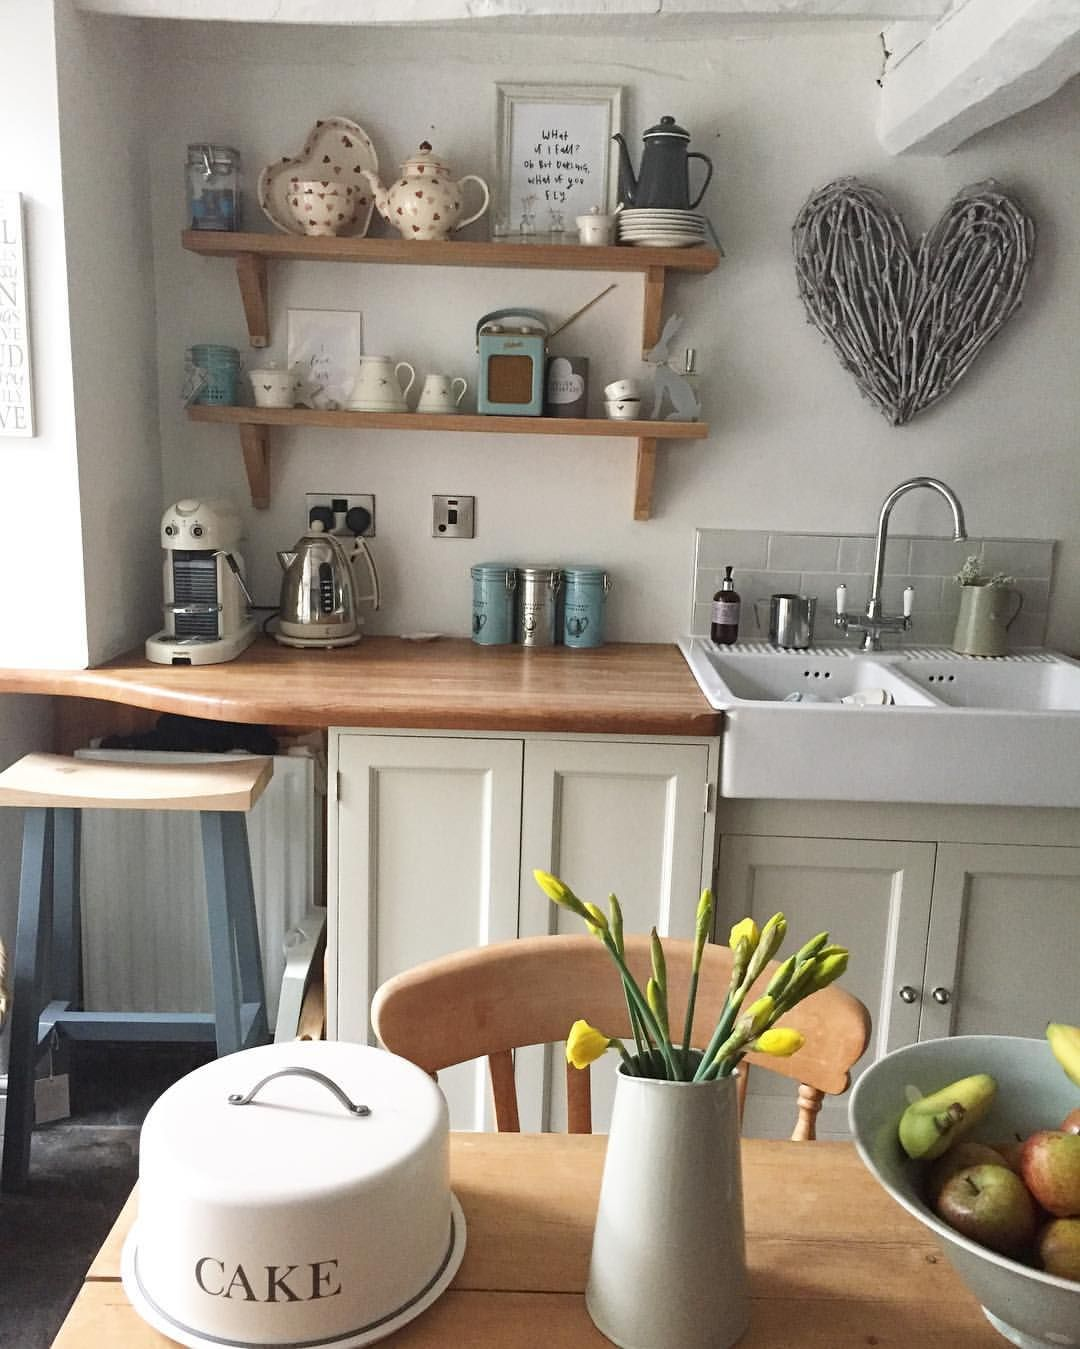 Hahka Happy Cottage Kitchen: Pin By Hannah On Home Décor In 2019